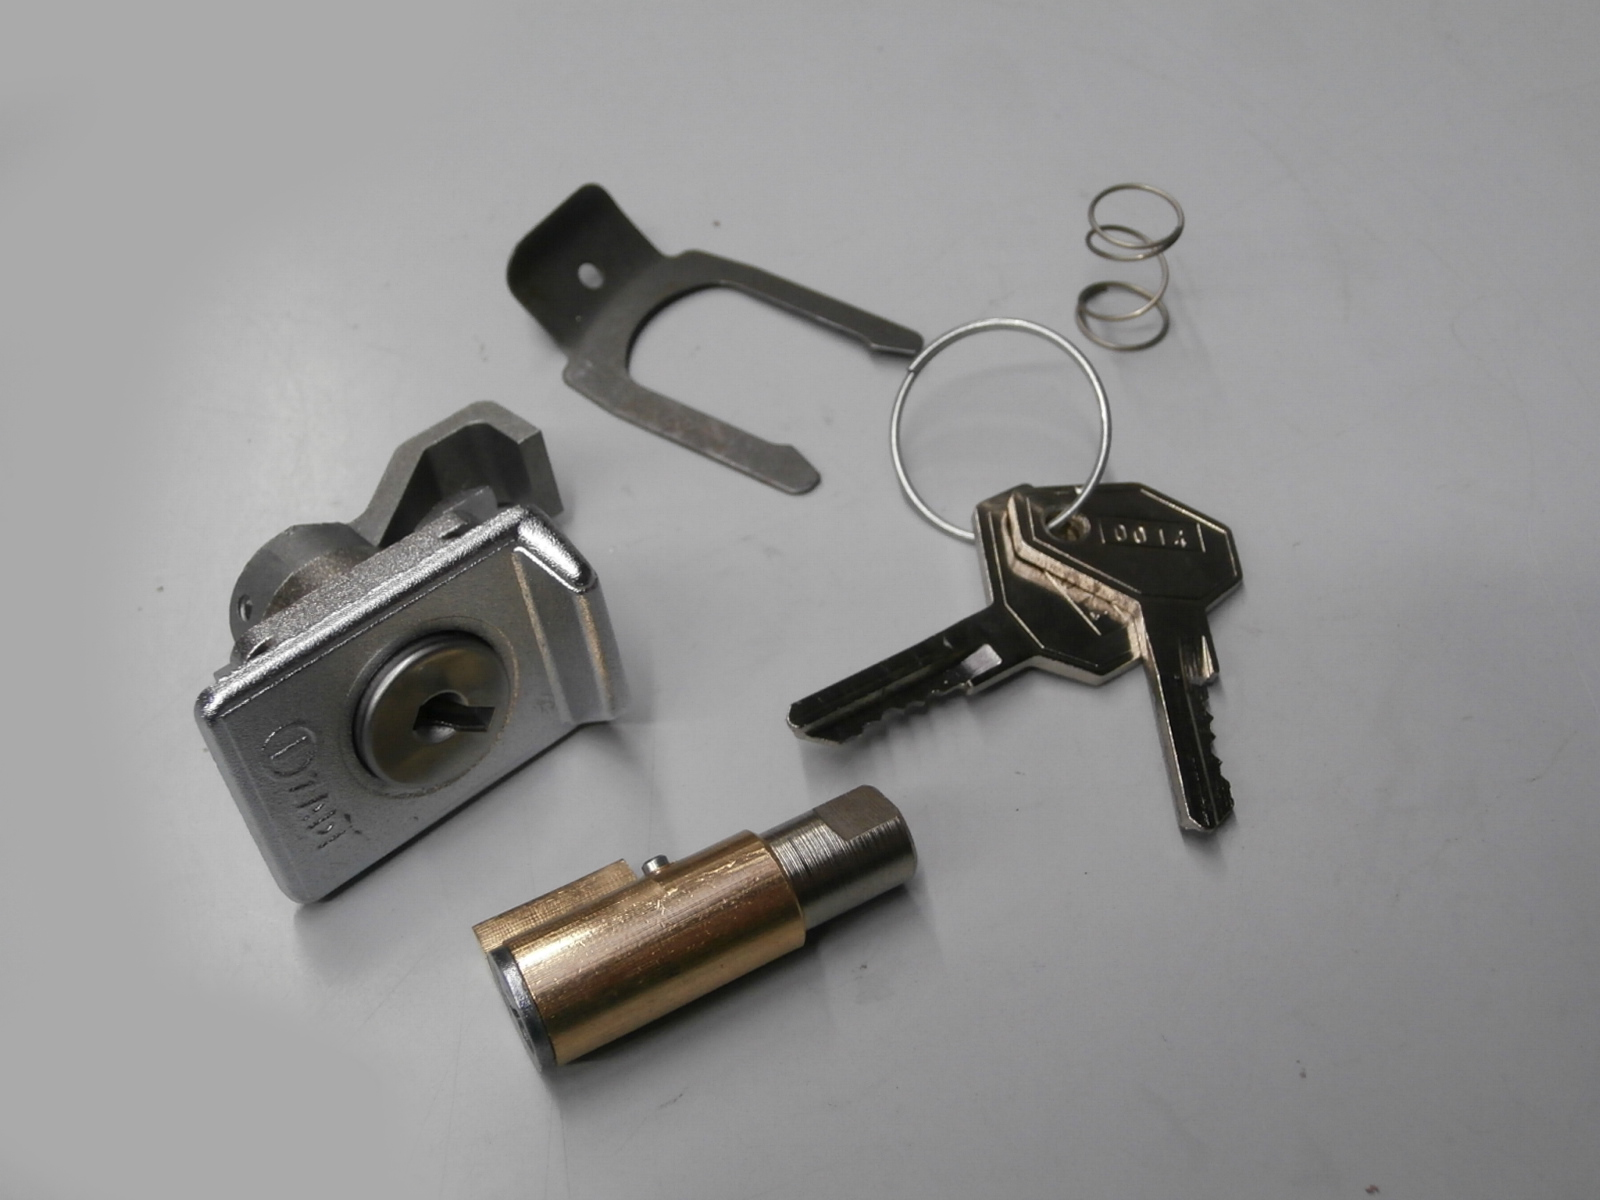 5654 kit pair lock with lock top box for vespa px 125 50125 ebay. Black Bedroom Furniture Sets. Home Design Ideas